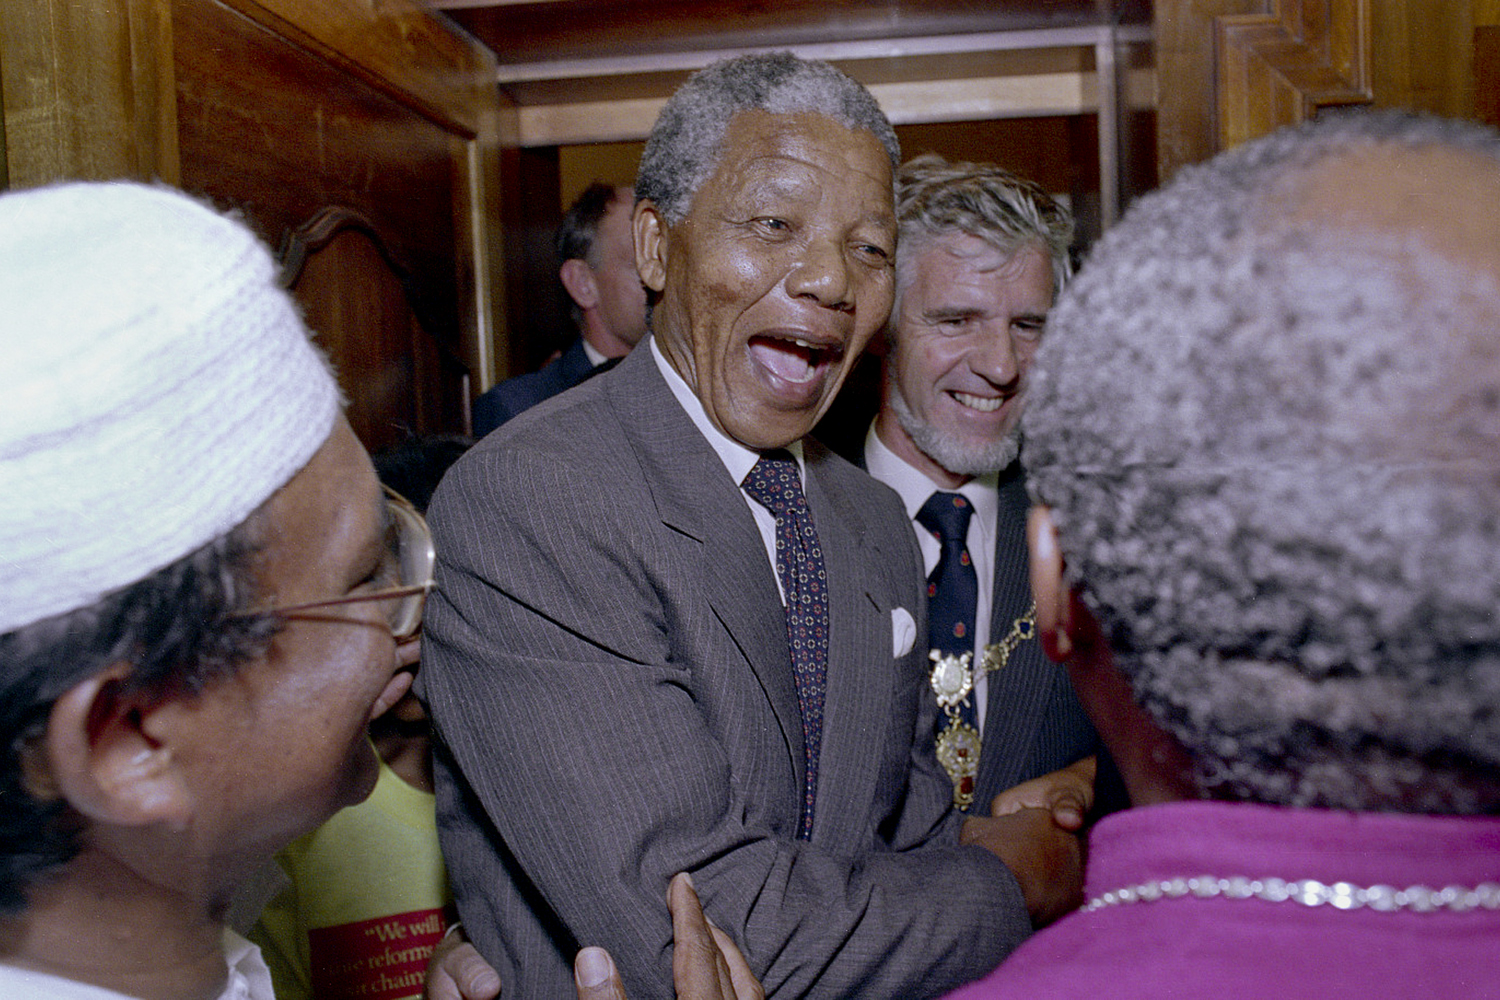 Mandela is greeted by Archbishop Desmond Tutu at the Cape Town City Hall, among the first group of people that Mandela celebrated with after his release.